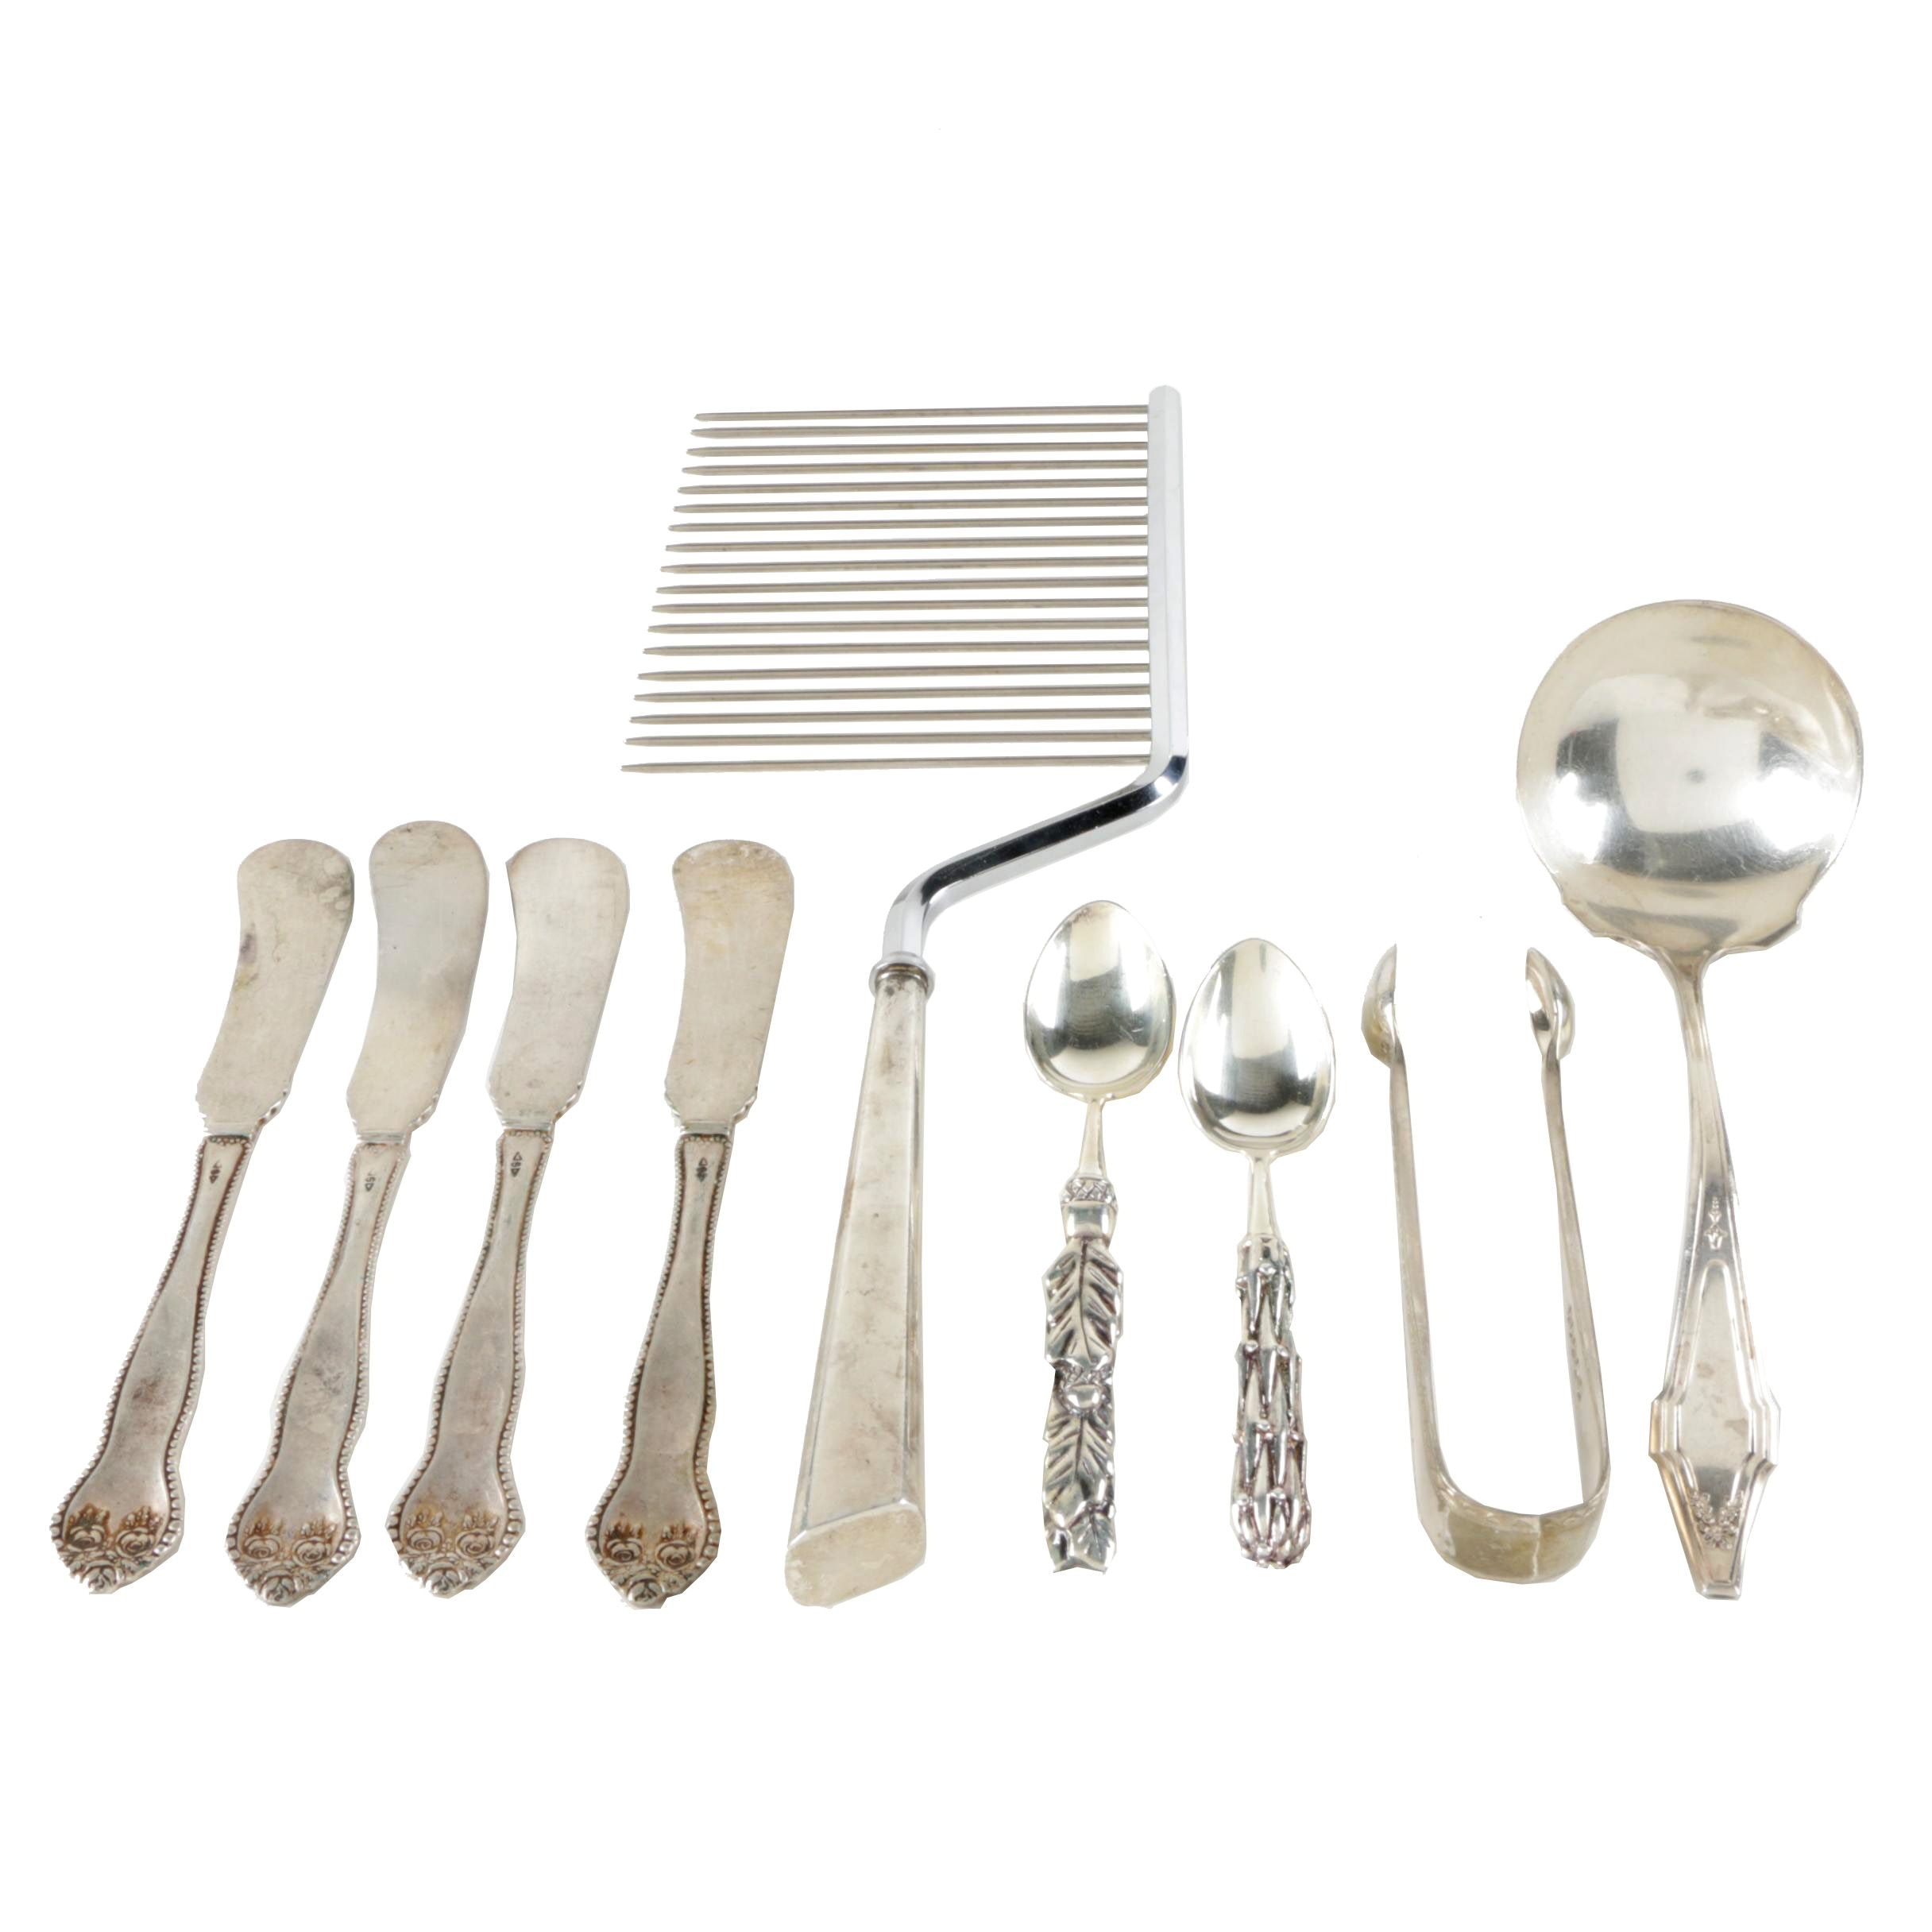 Holmes & Edwards Plated Silver Ladle with Additional Kitchen Items and Flatware